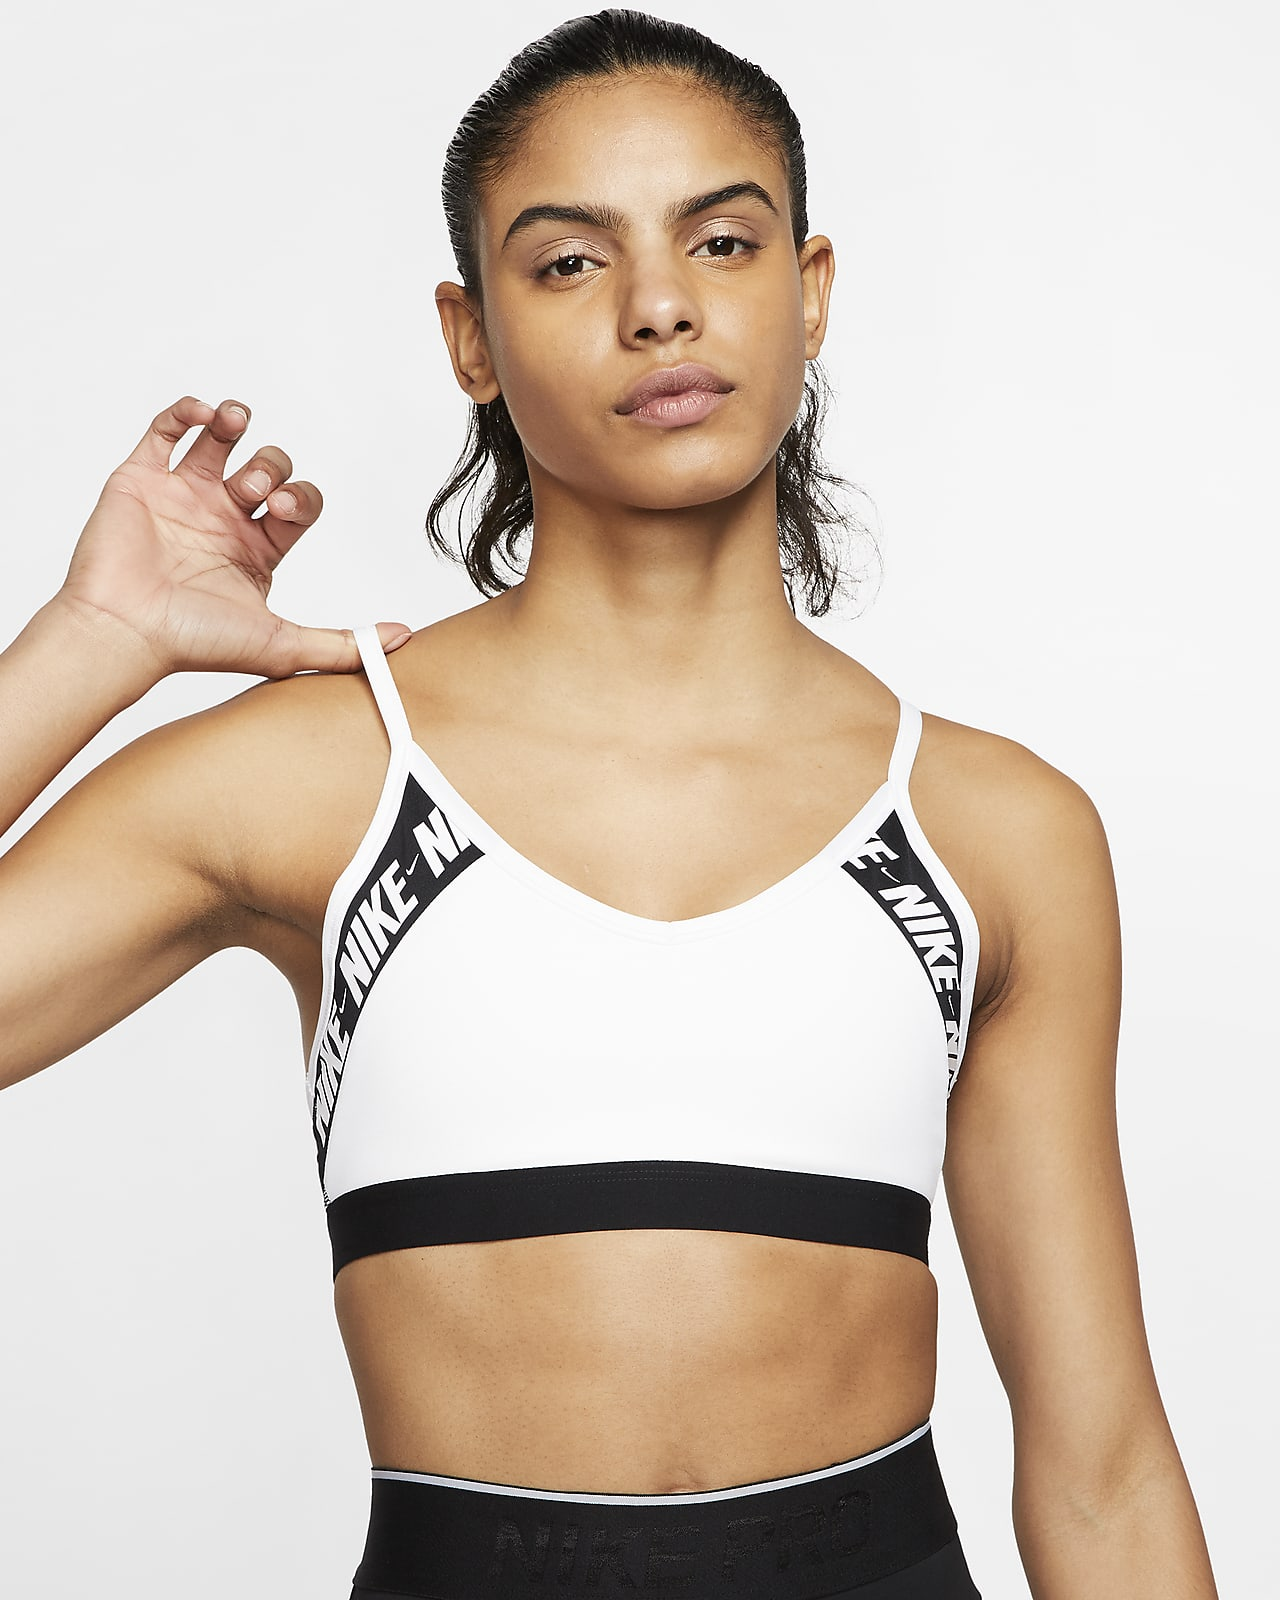 Nike Dri-FIT Indy Women's Light-Support Padded Logo Sports Bra